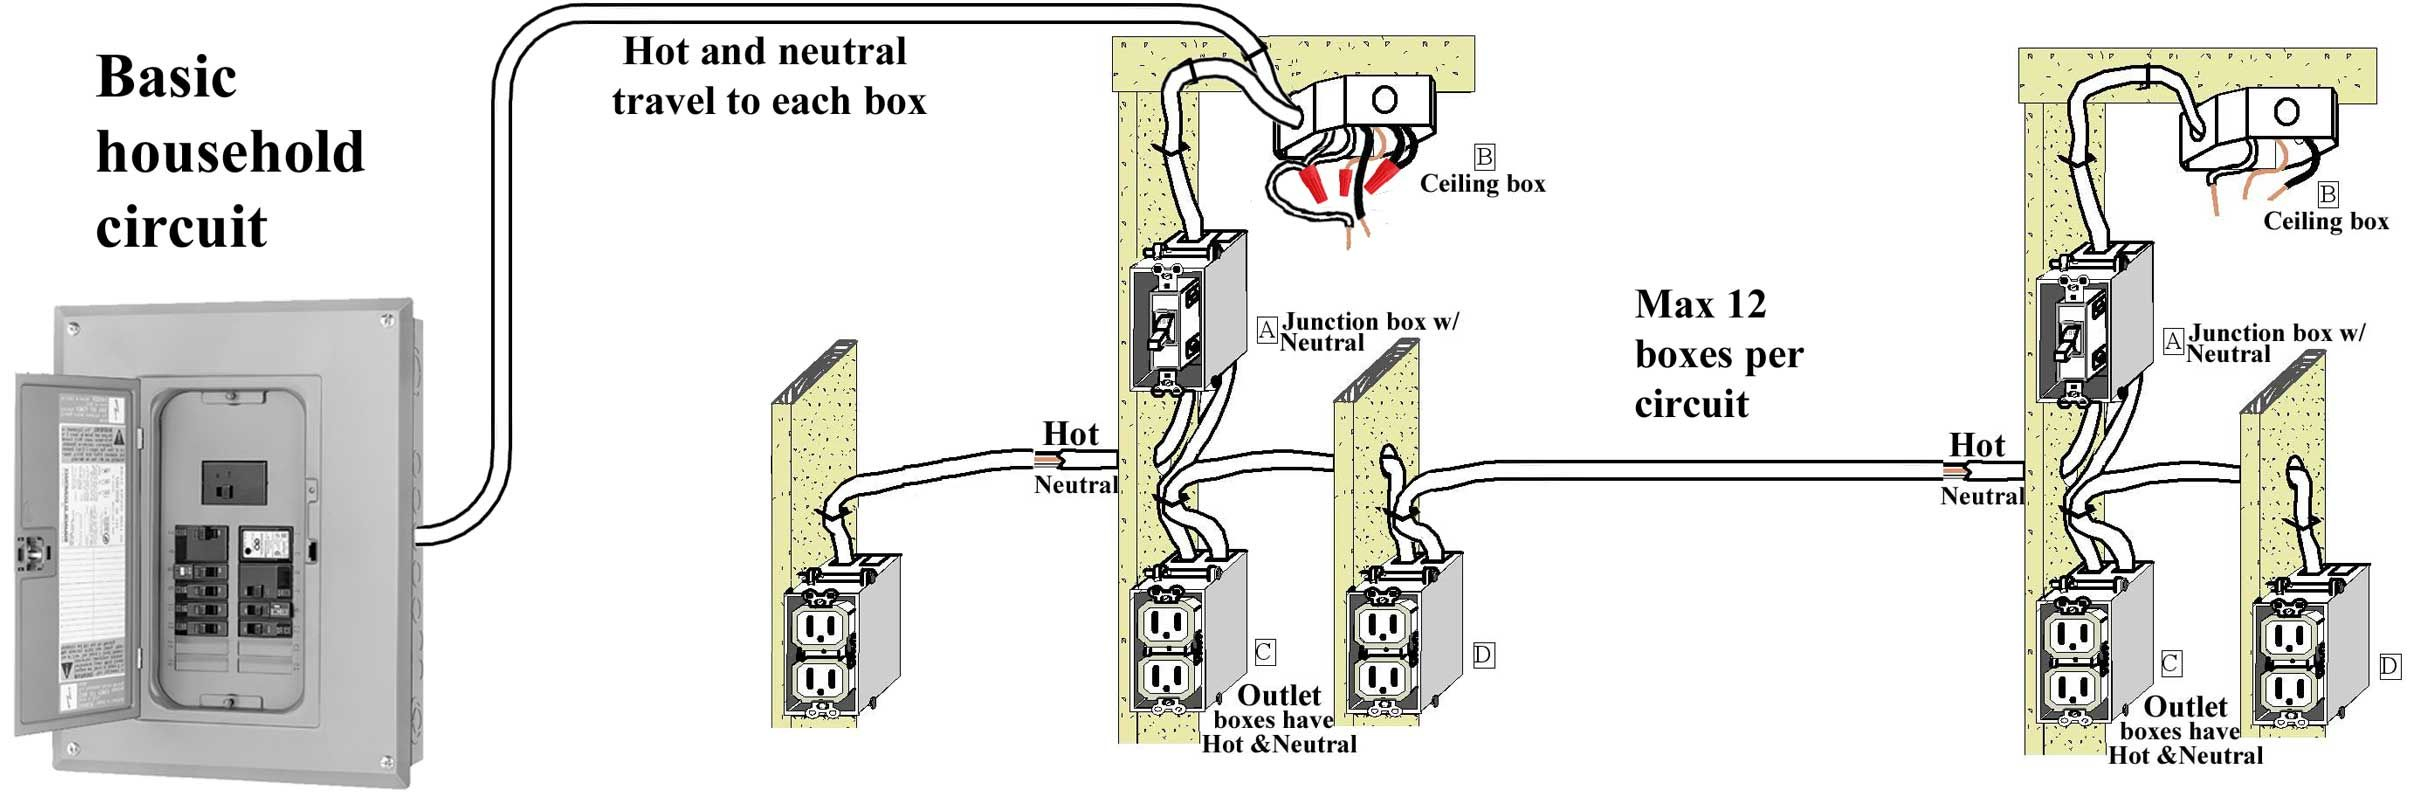 Basic House Wiring - Wiring Diagram Data - House Wiring Diagram